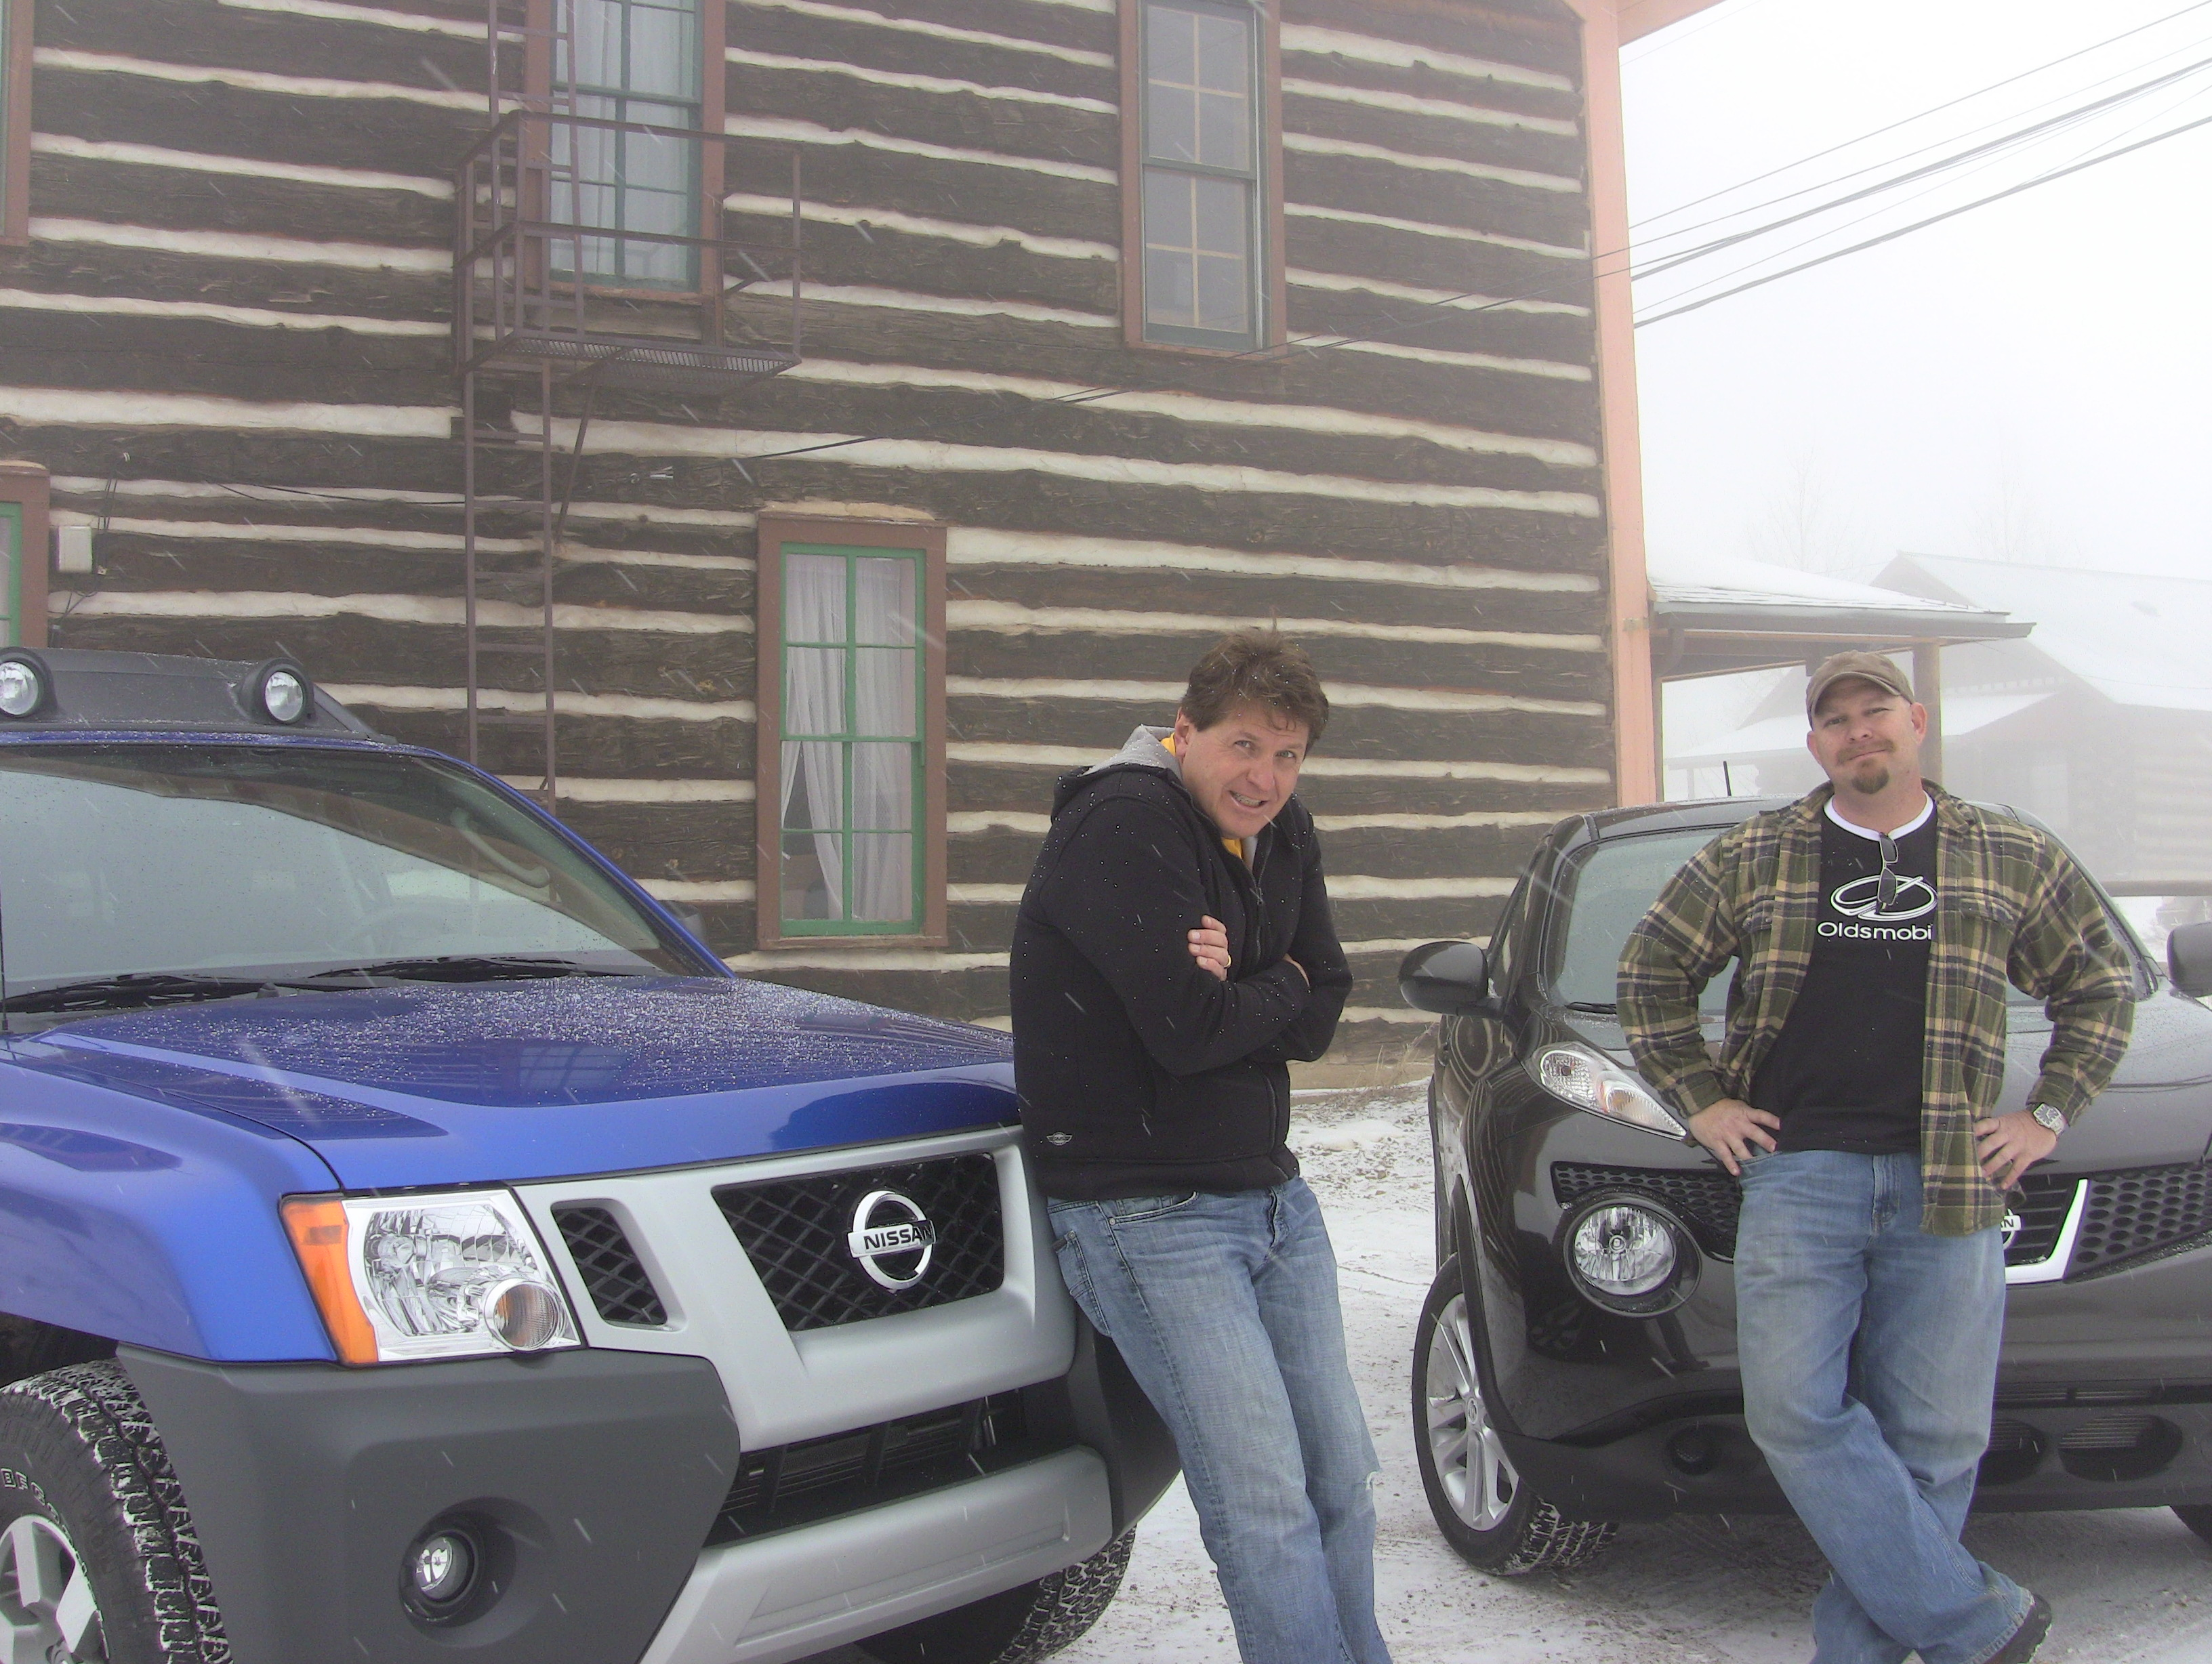 2012 nissan xterra vs juke mashup video review which is the most the 2012 nissan juke and the 2012 nissan xterra both have all wheel drive so they are very good cars to drive when the snow starts falling in the mountains vanachro Choice Image